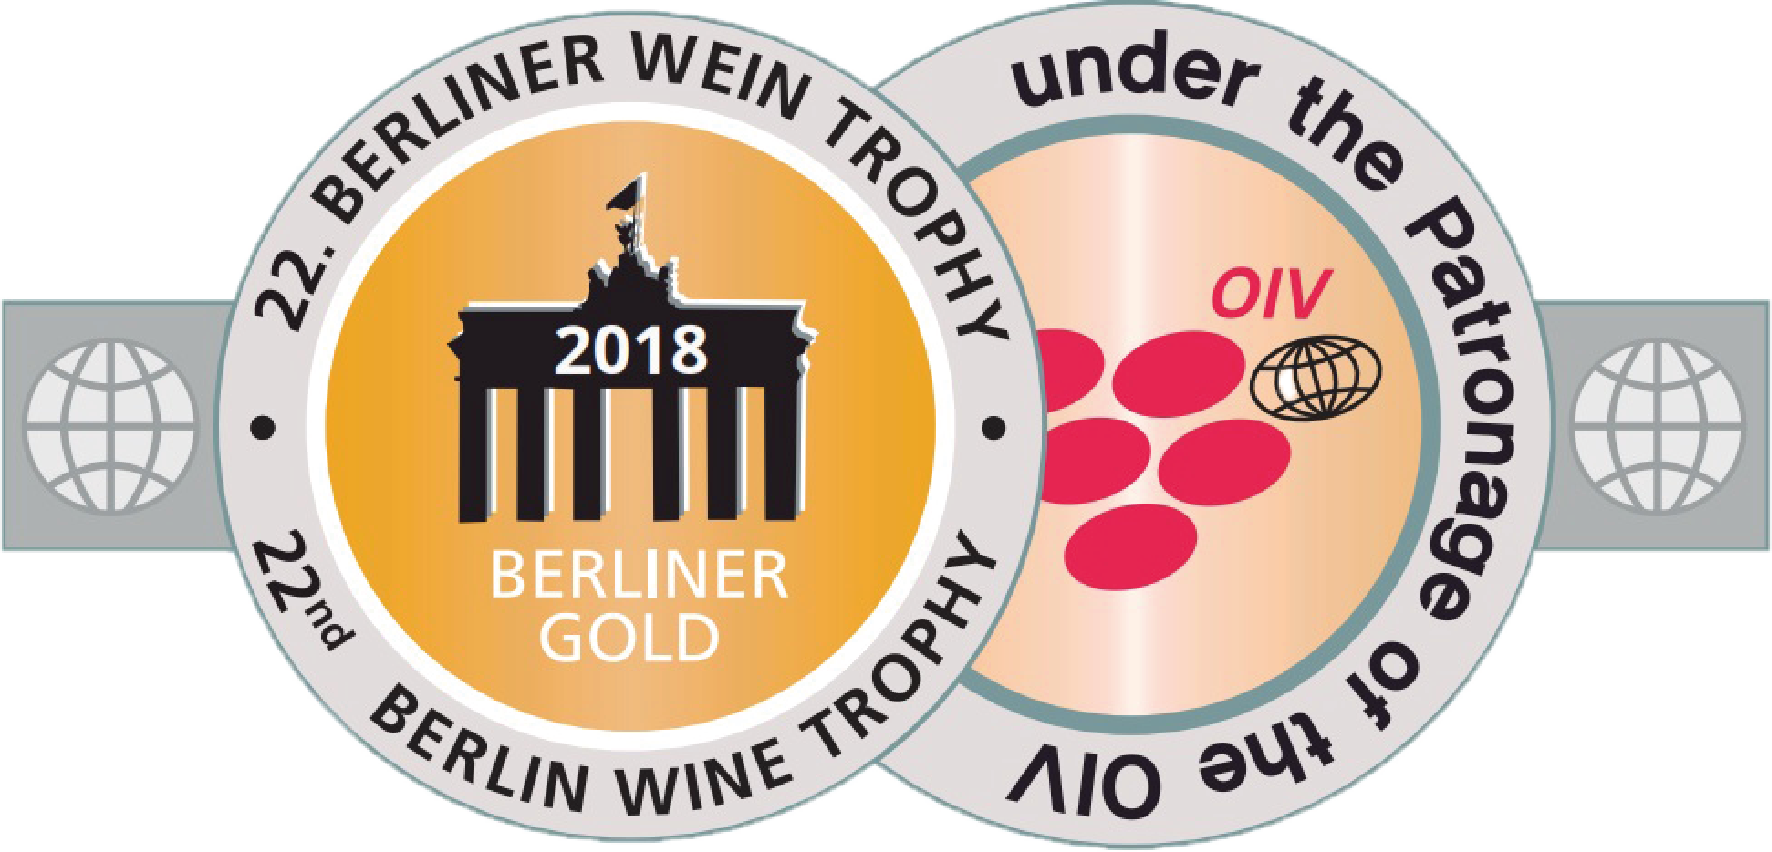 2011 vintage, awarded the Gold Medal at the 2018 Berliner Wein Trophy, Berlin (Germany).